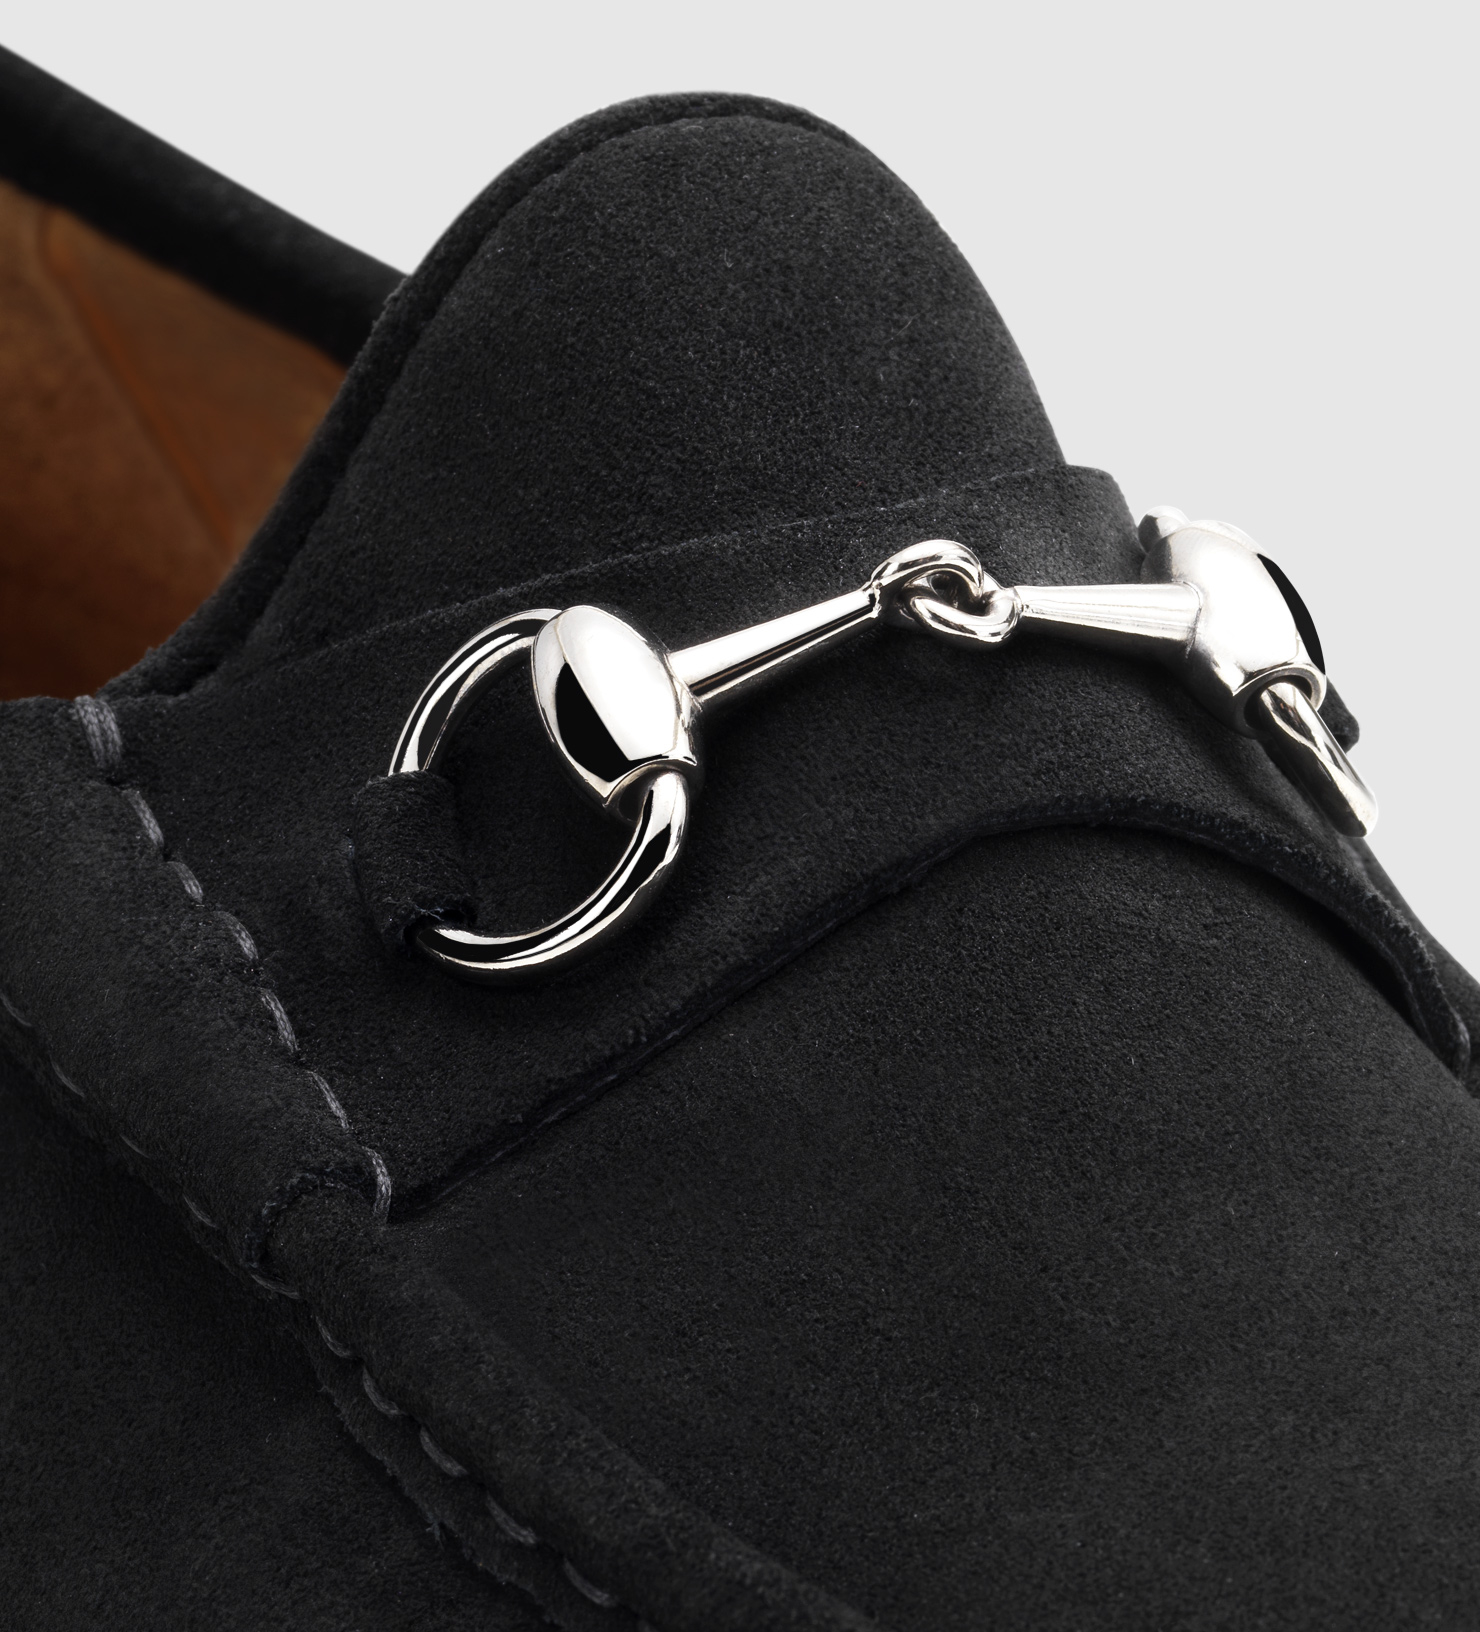 Men S Gucci Horsebit Loafers In Suede The Art Of Mike Mignola